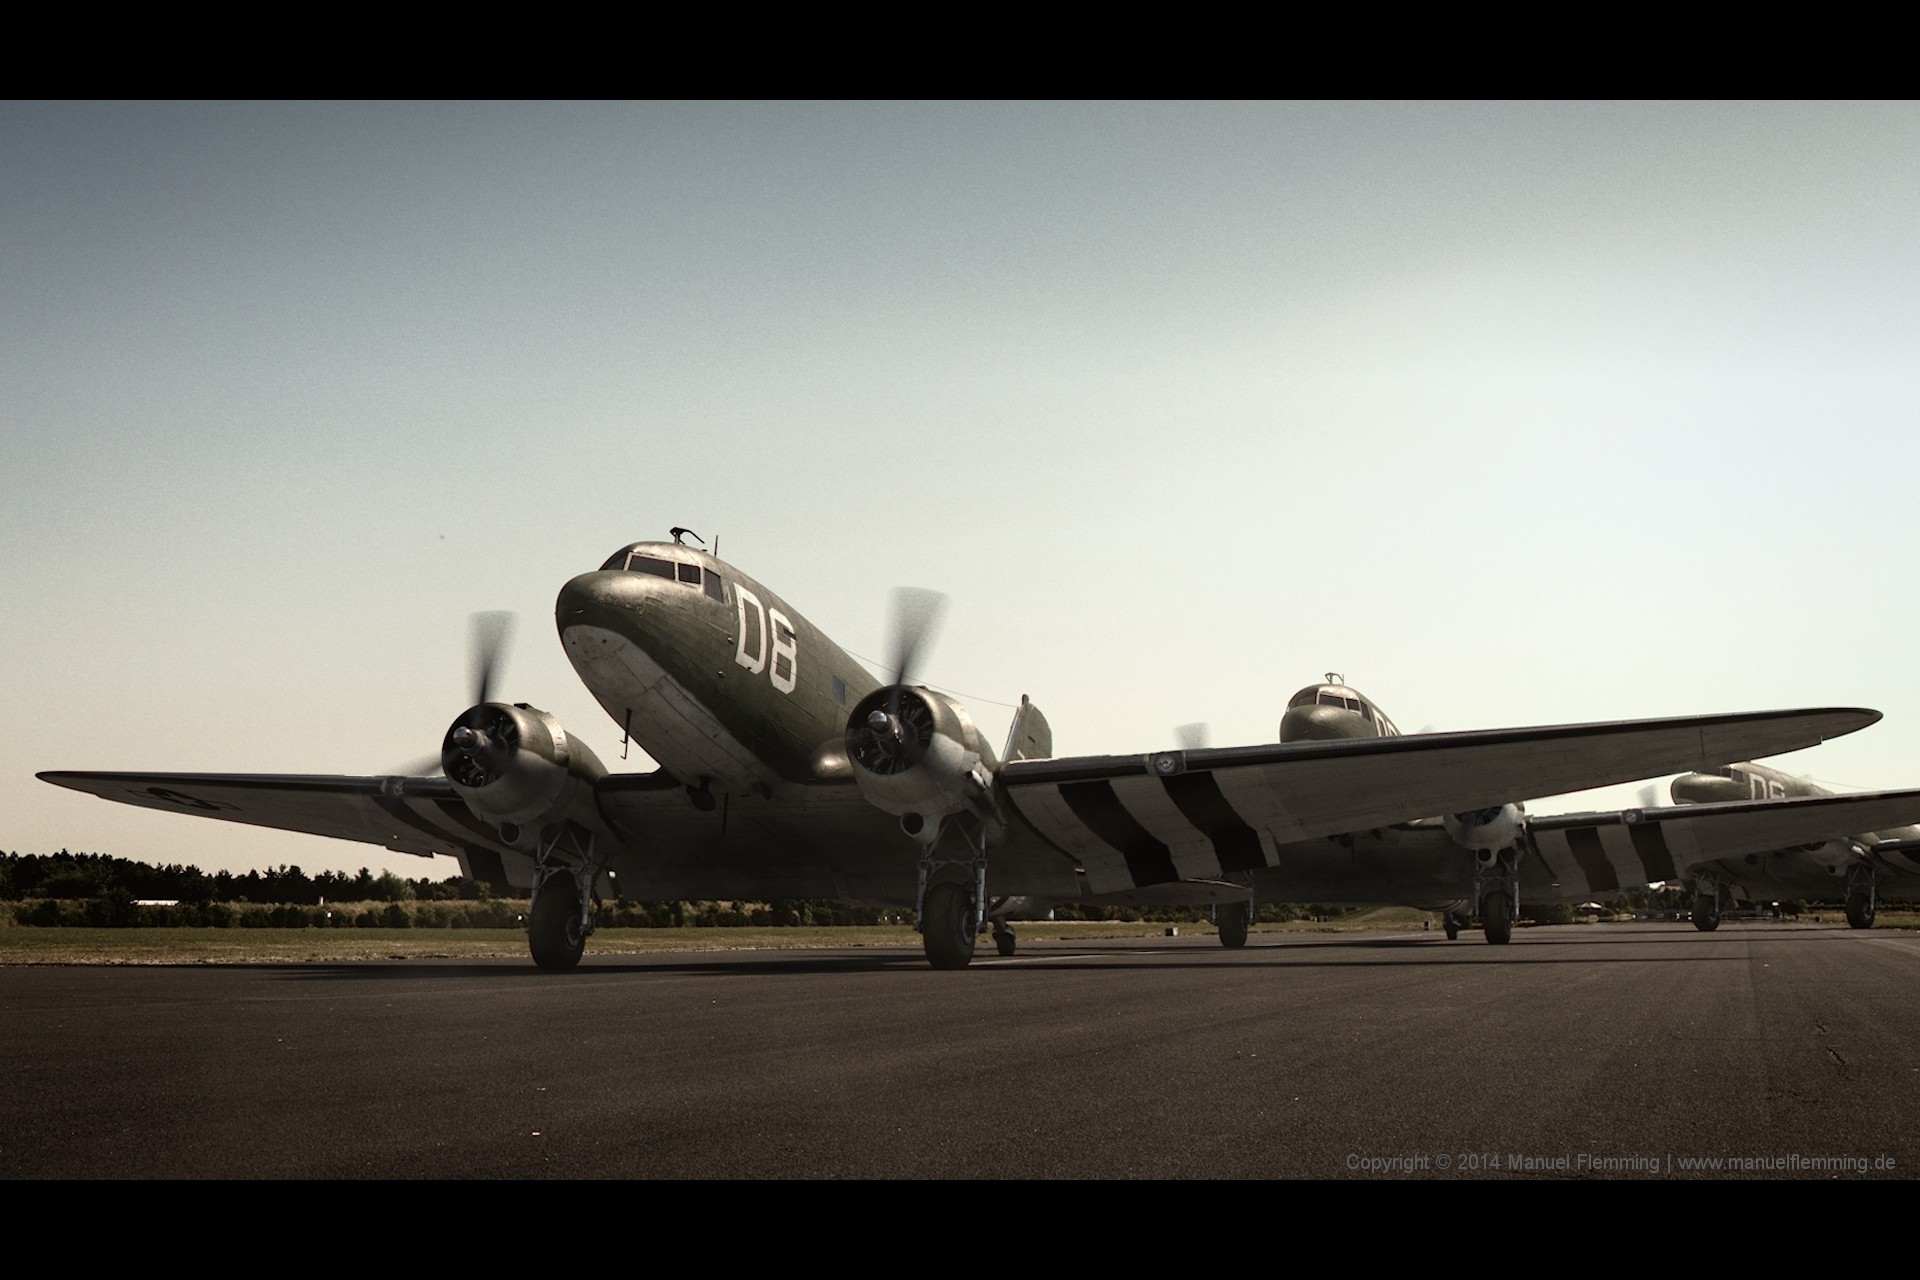 A rendering of multiple C-47 at take off - created using Maya, Mari, Vray and Nuke. I'm responsible for HDRI & Plate photography, modeling, texturing, shading, lighting, rendering and compositing.